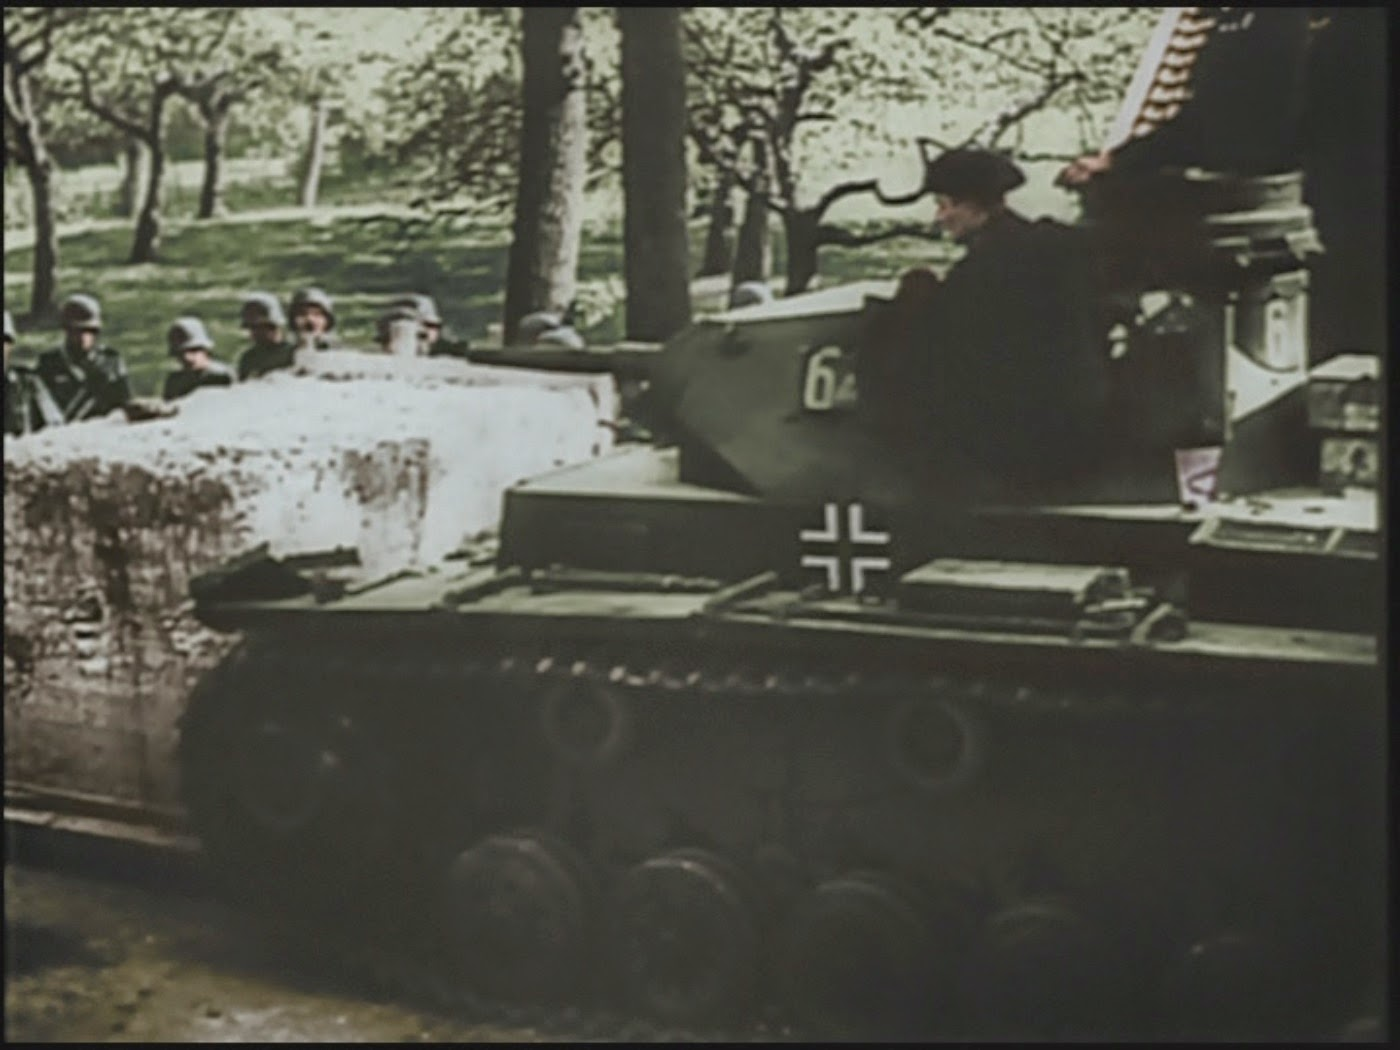 A Pz III pushes aside a frontier barrier in Belgium